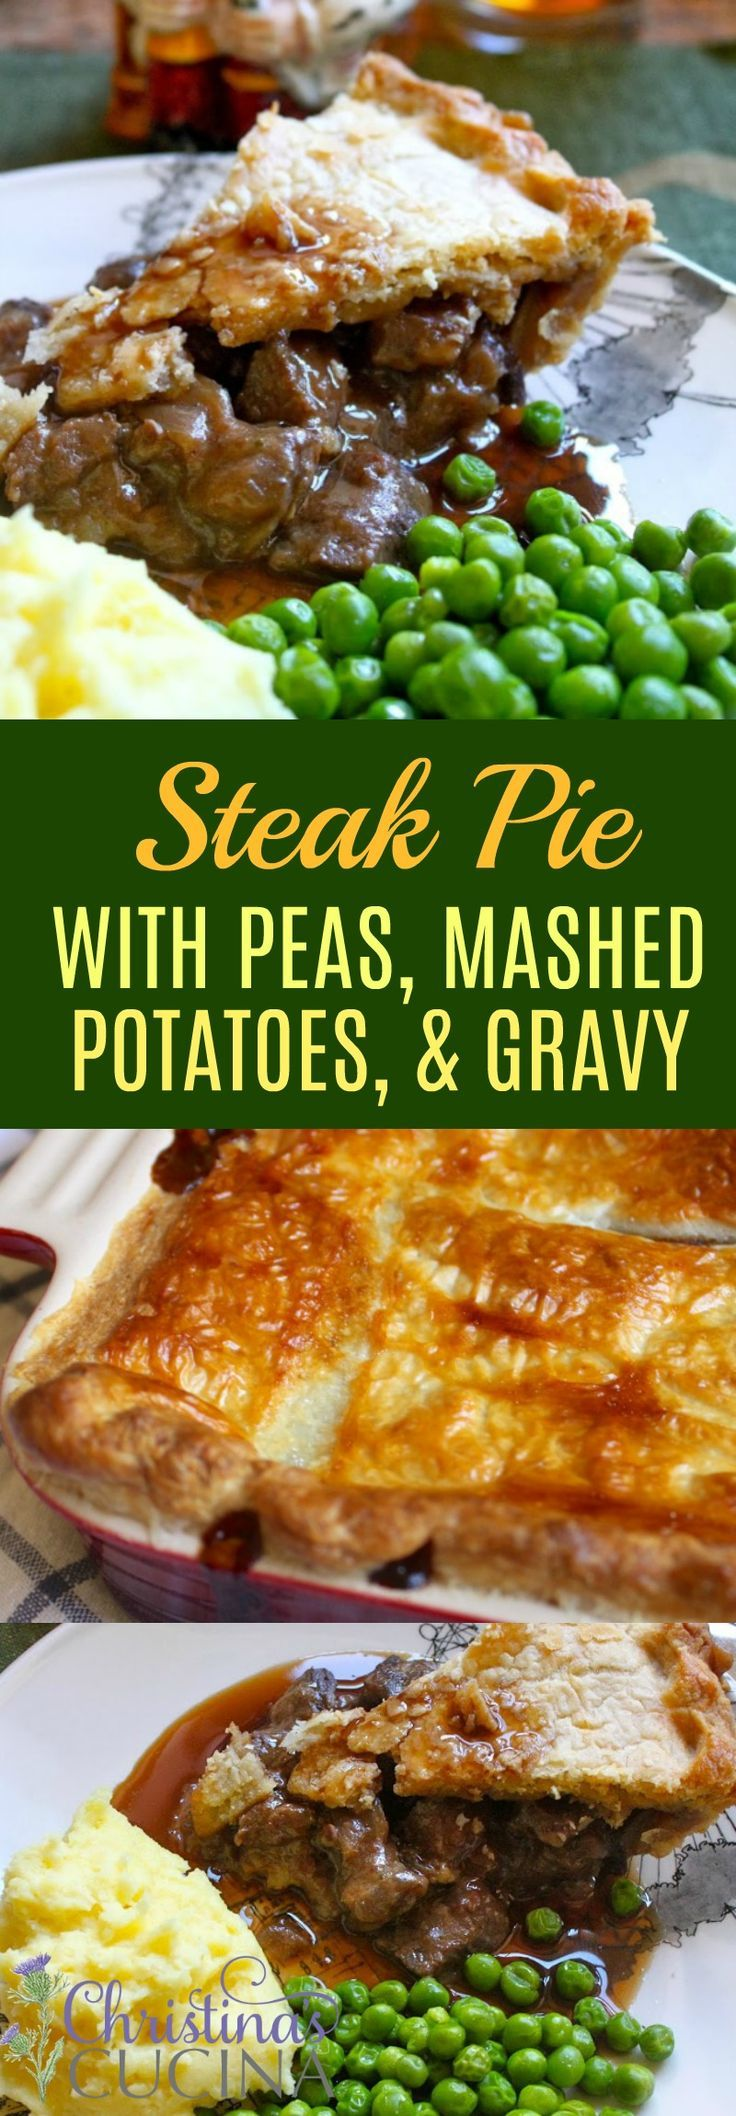 Steak Pie with Peas, Mashed Potatoes, & Gravy | !!!Great ...